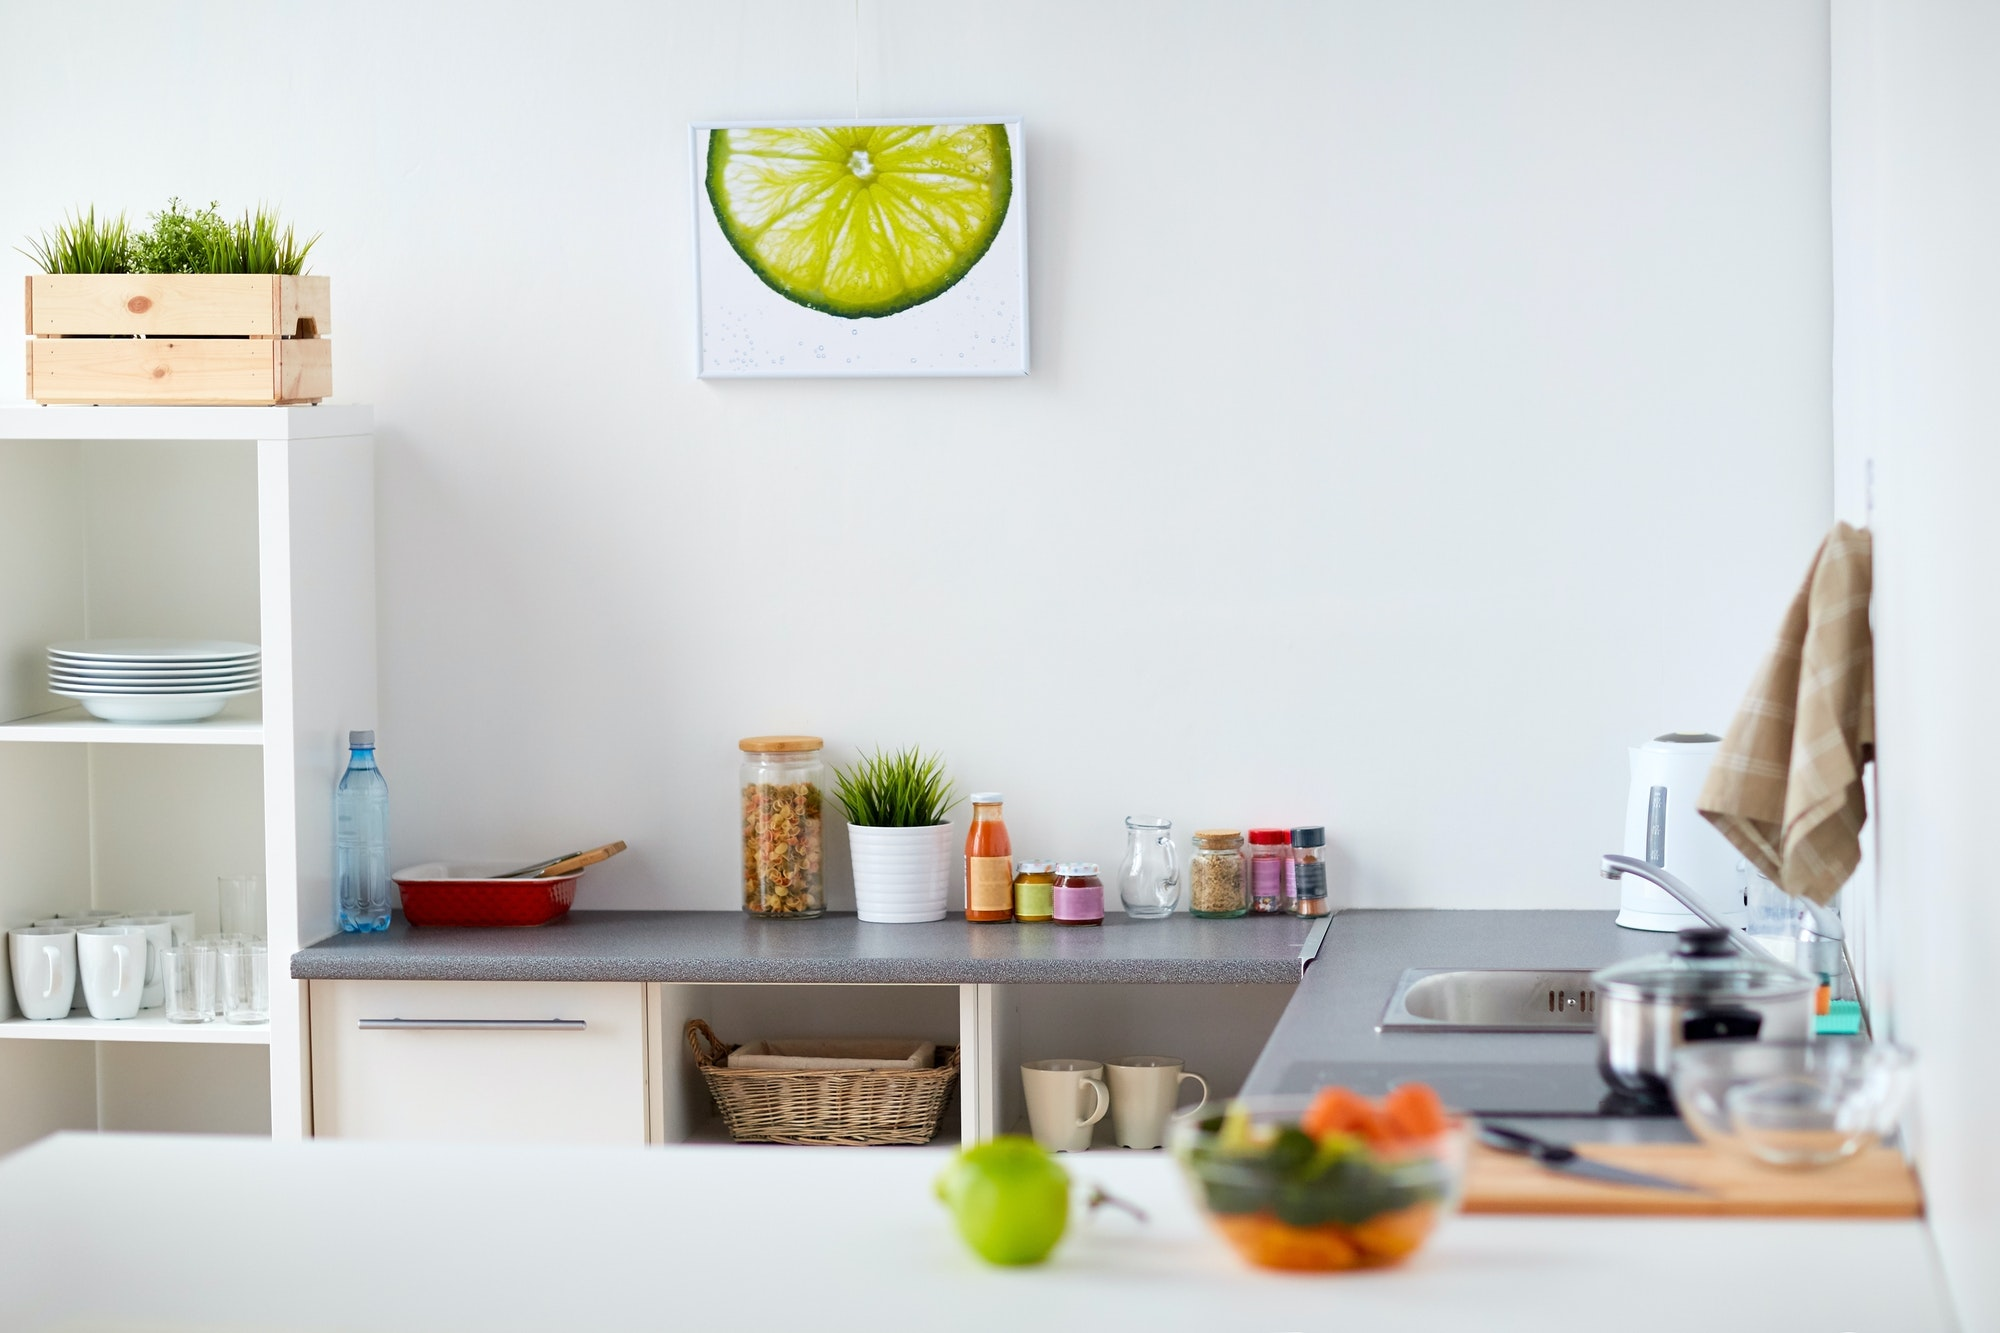 modern home kitchen interior with food on table